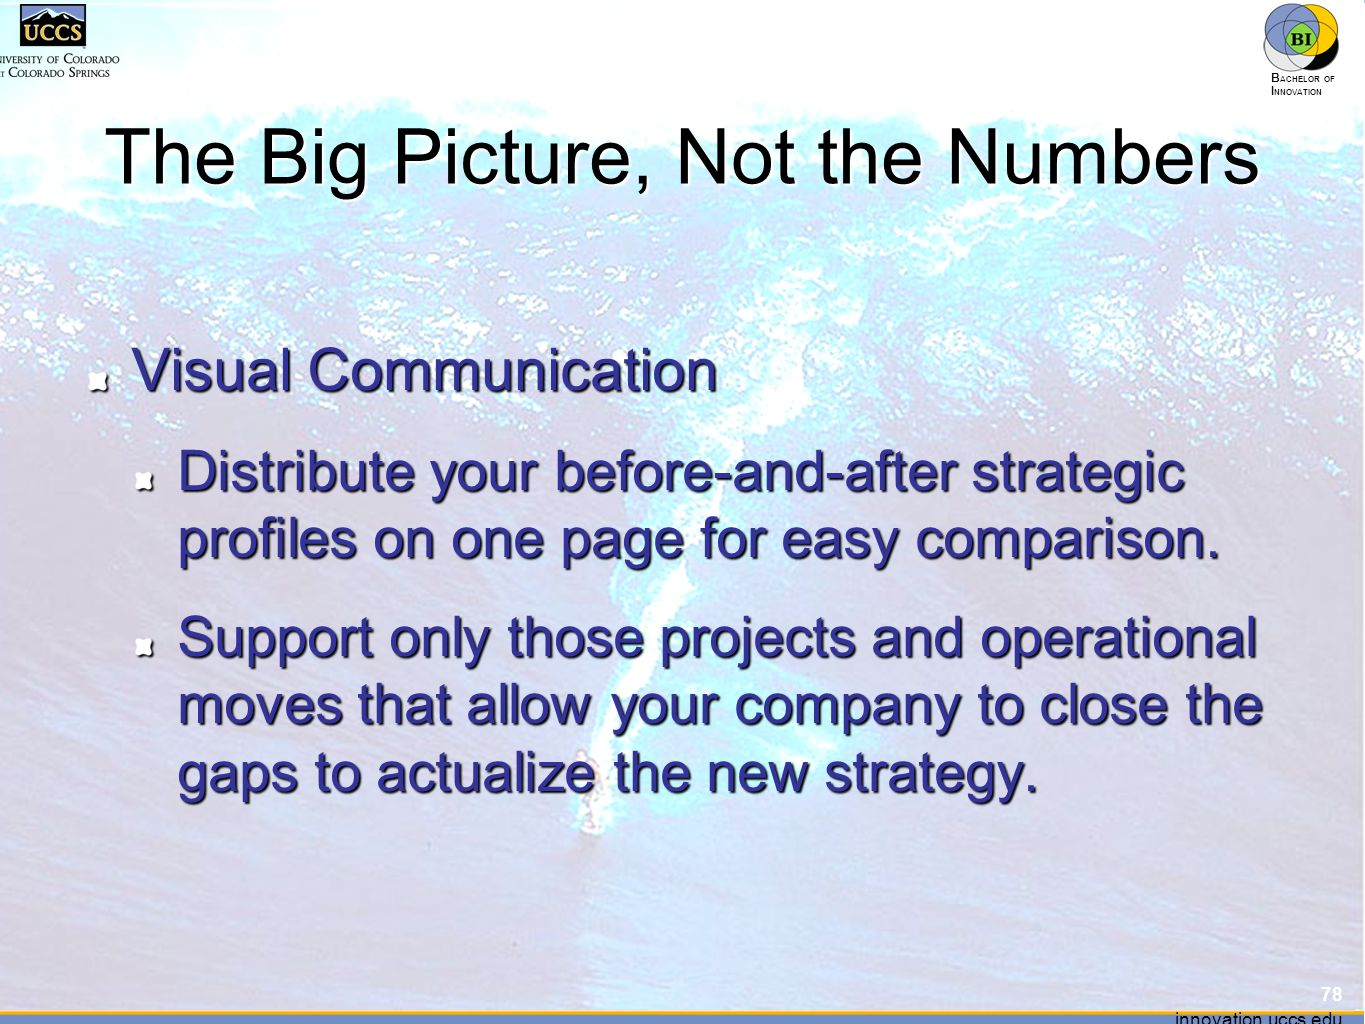 innovation.uccs.edu B ACHELOR OF I NNOVATION ™ innovation.uccs.edu B ACHELOR OF I NNOVATION ™ The Big Picture, Not the Numbers Visual Communication Distribute your before-and-after strategic profiles on one page for easy comparison.